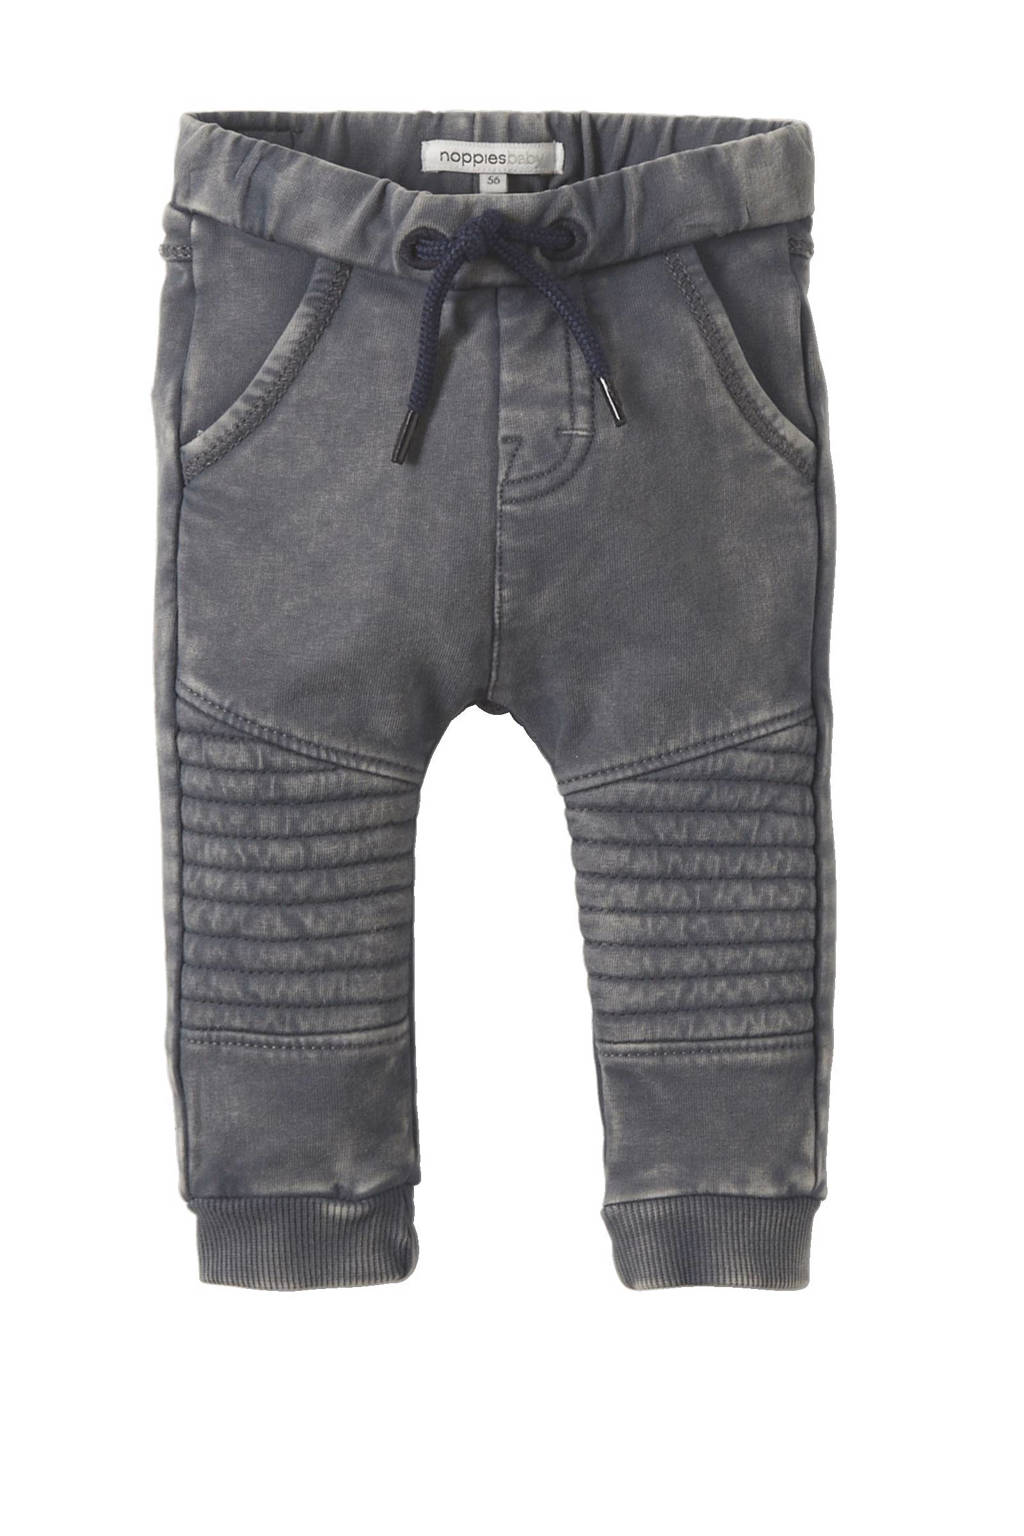 Noppies   baby sweatpants Vik grijs, Grijs